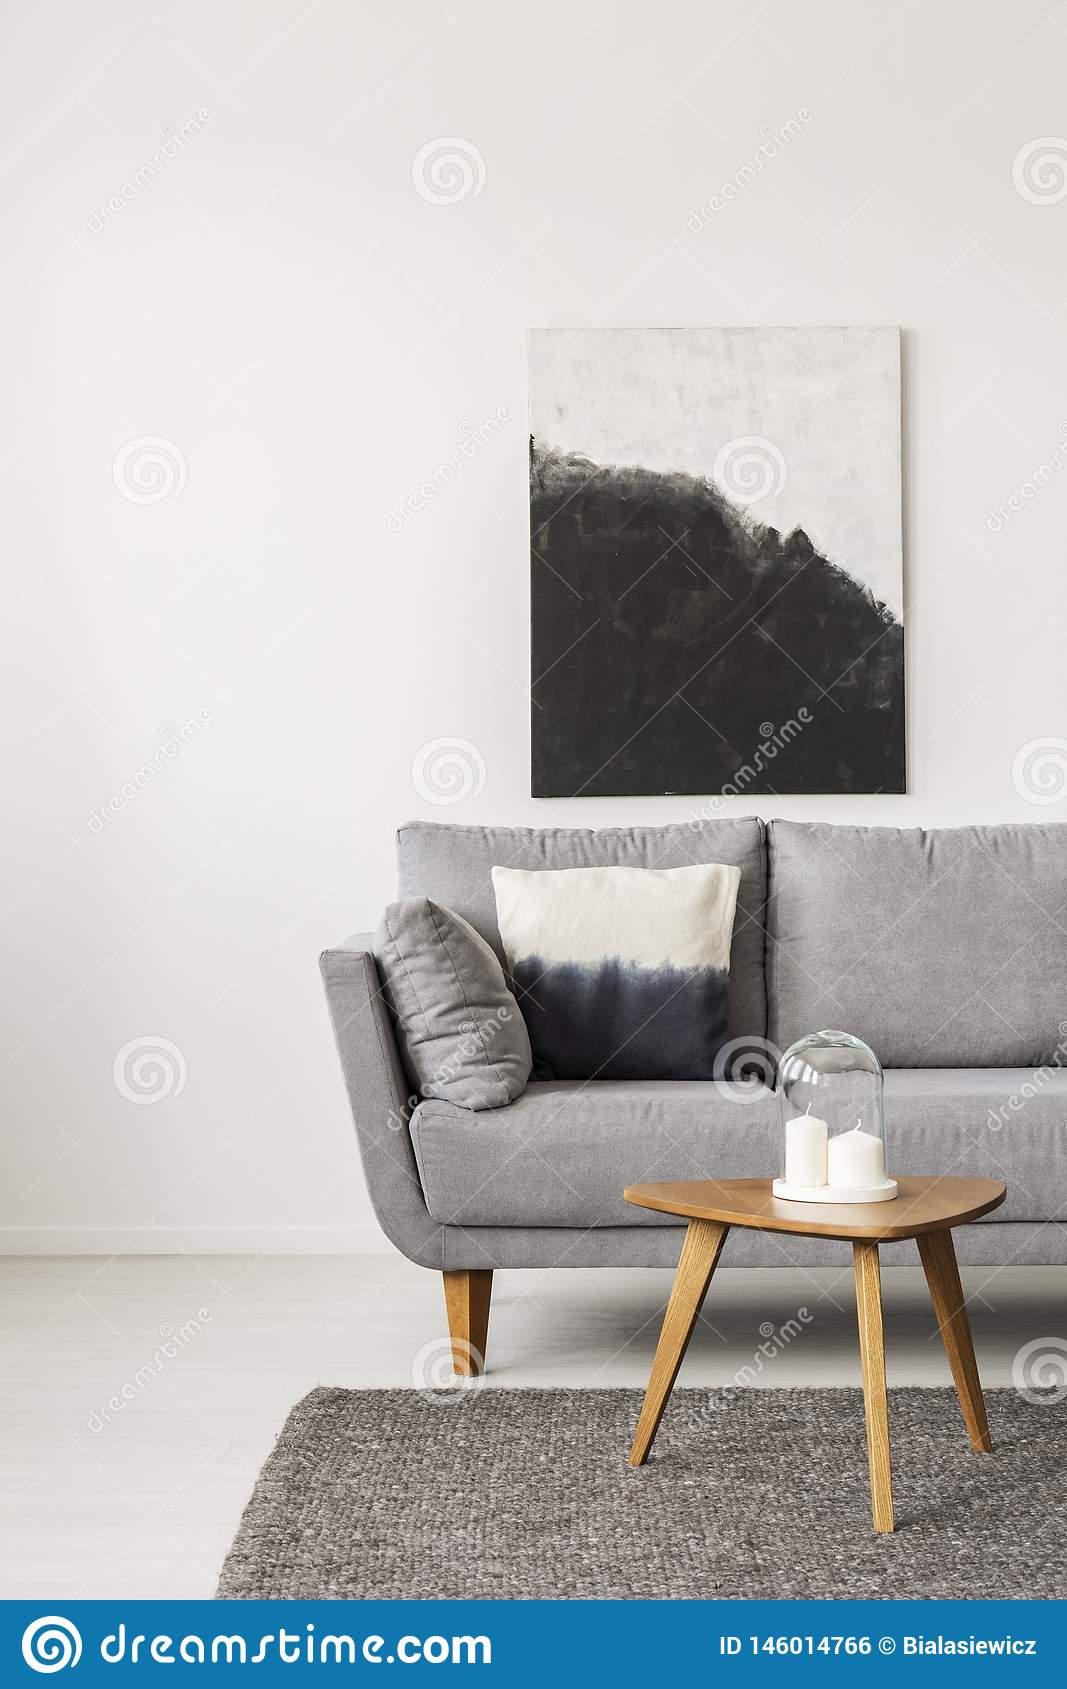 Black And White Painting On Empty White Wall With Wooden